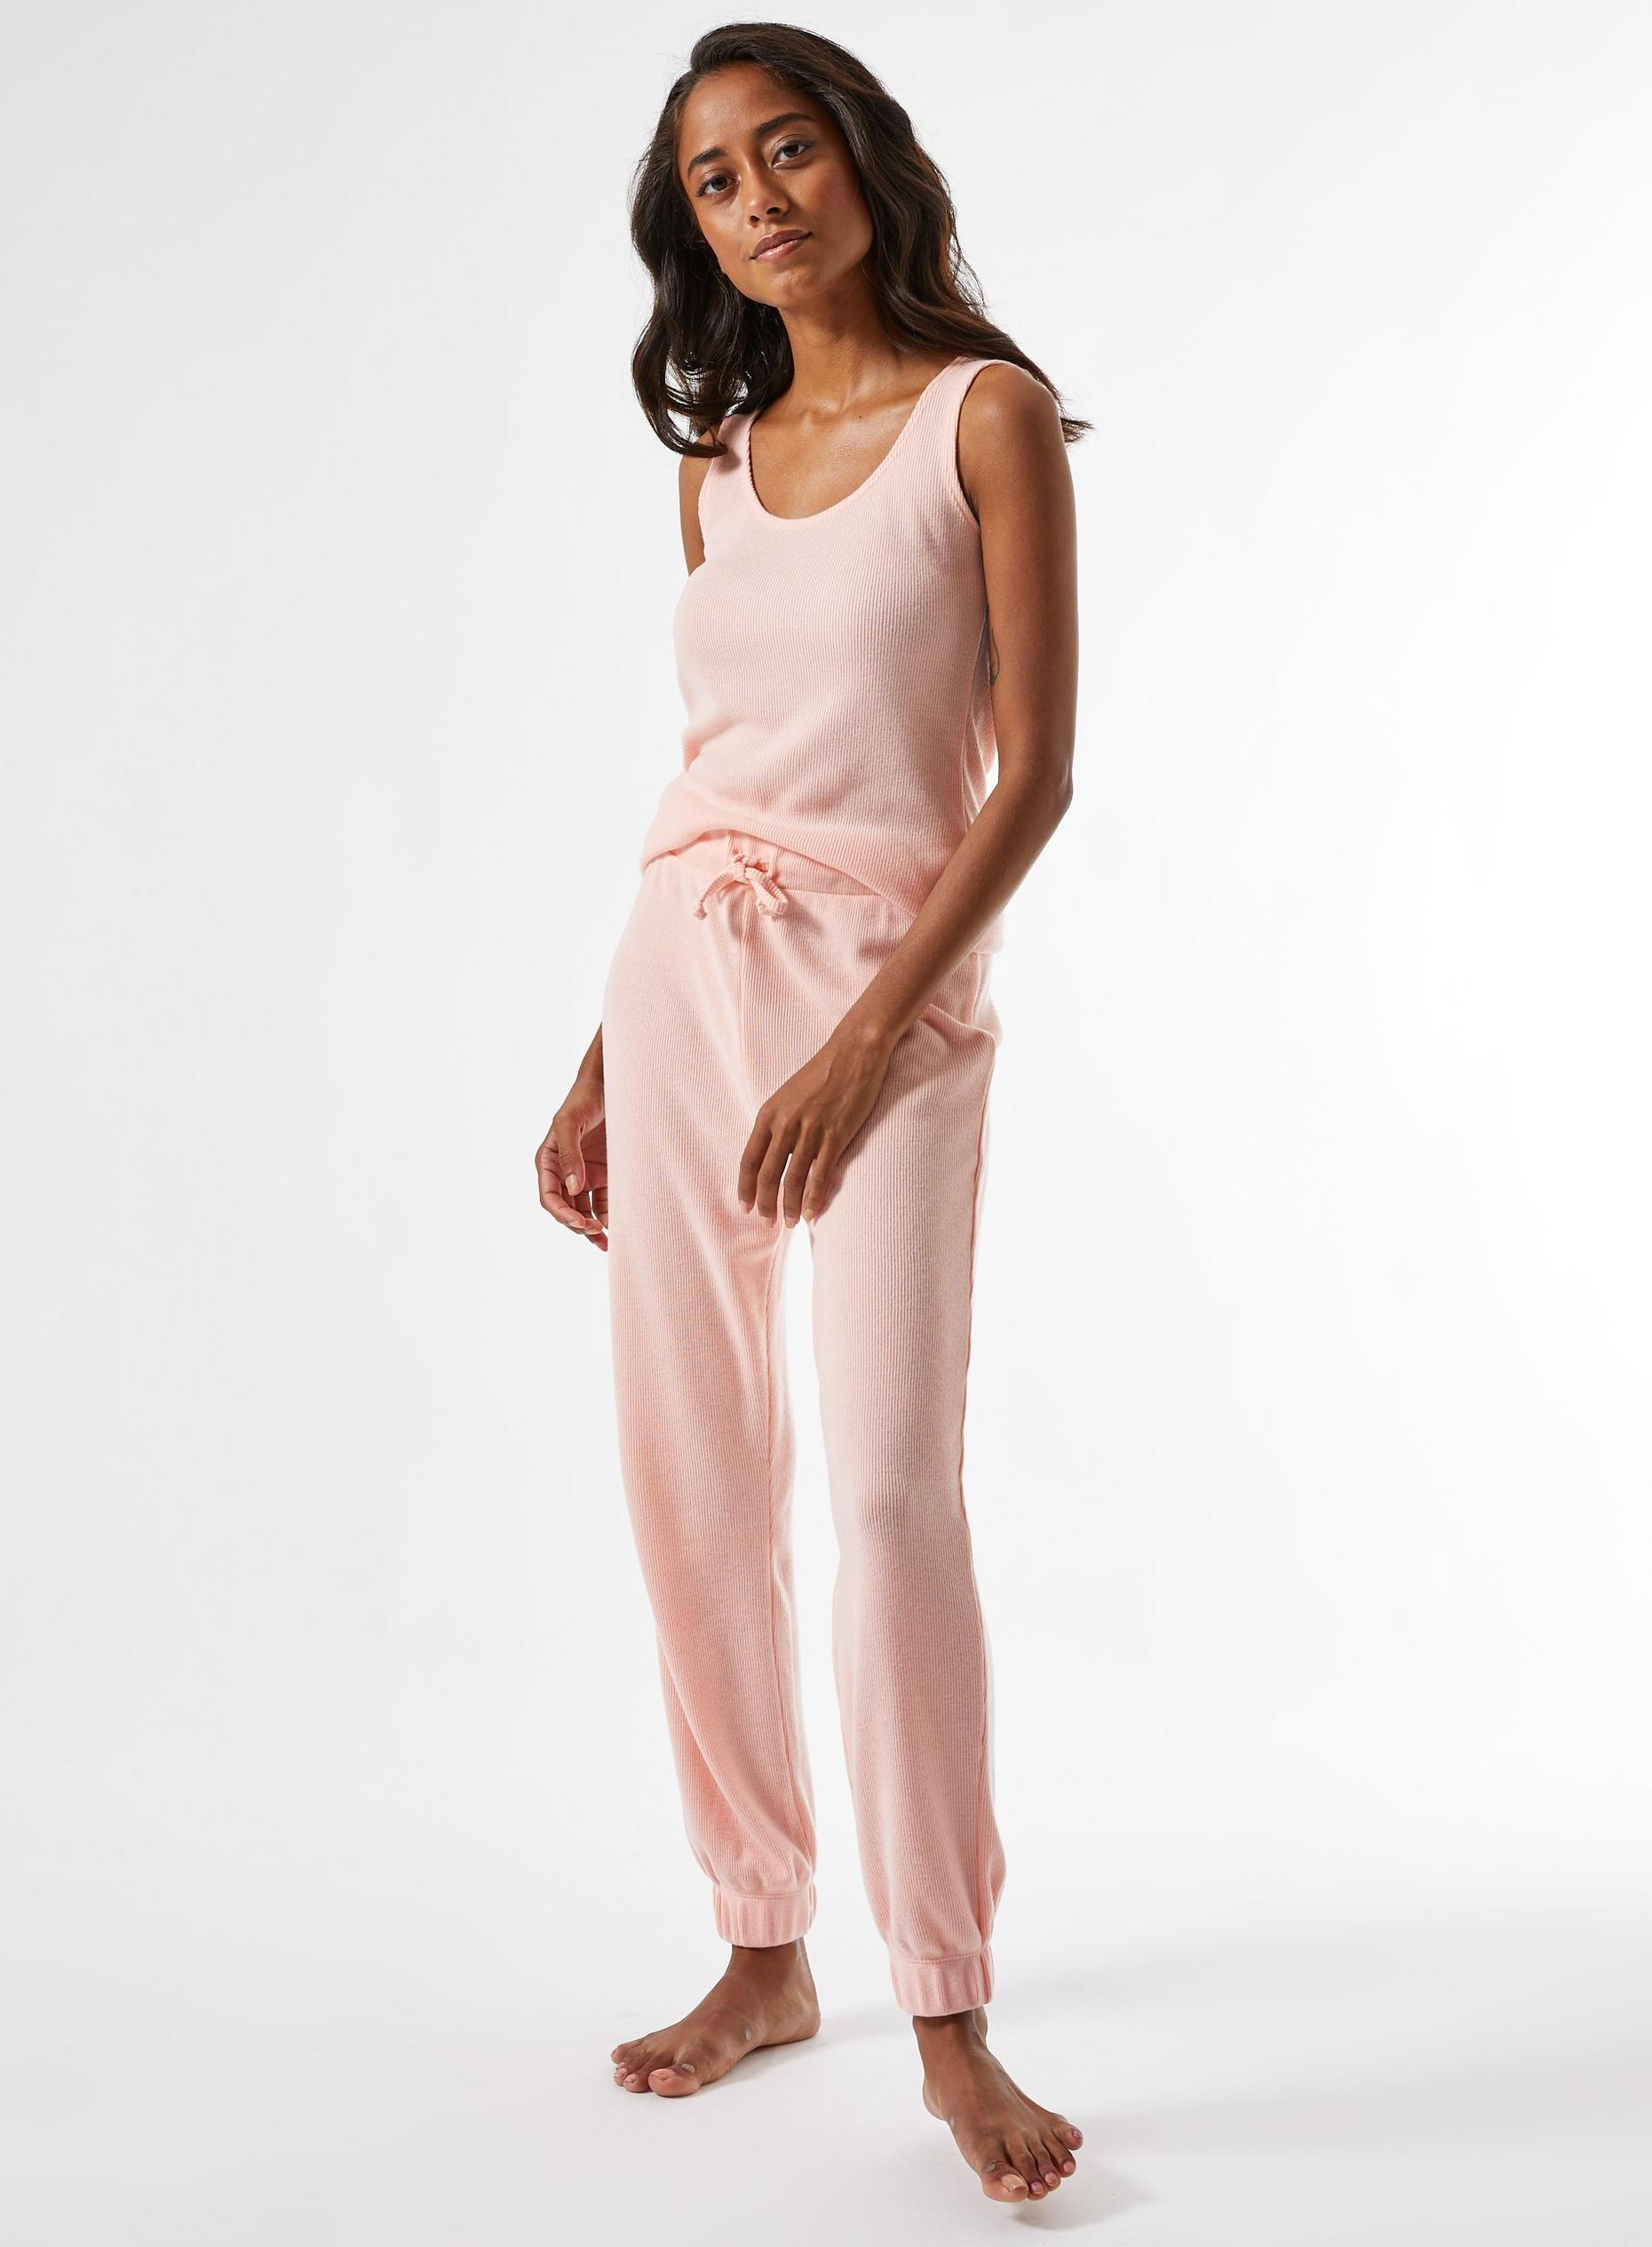 Petite Blush Loungewear Bottoms